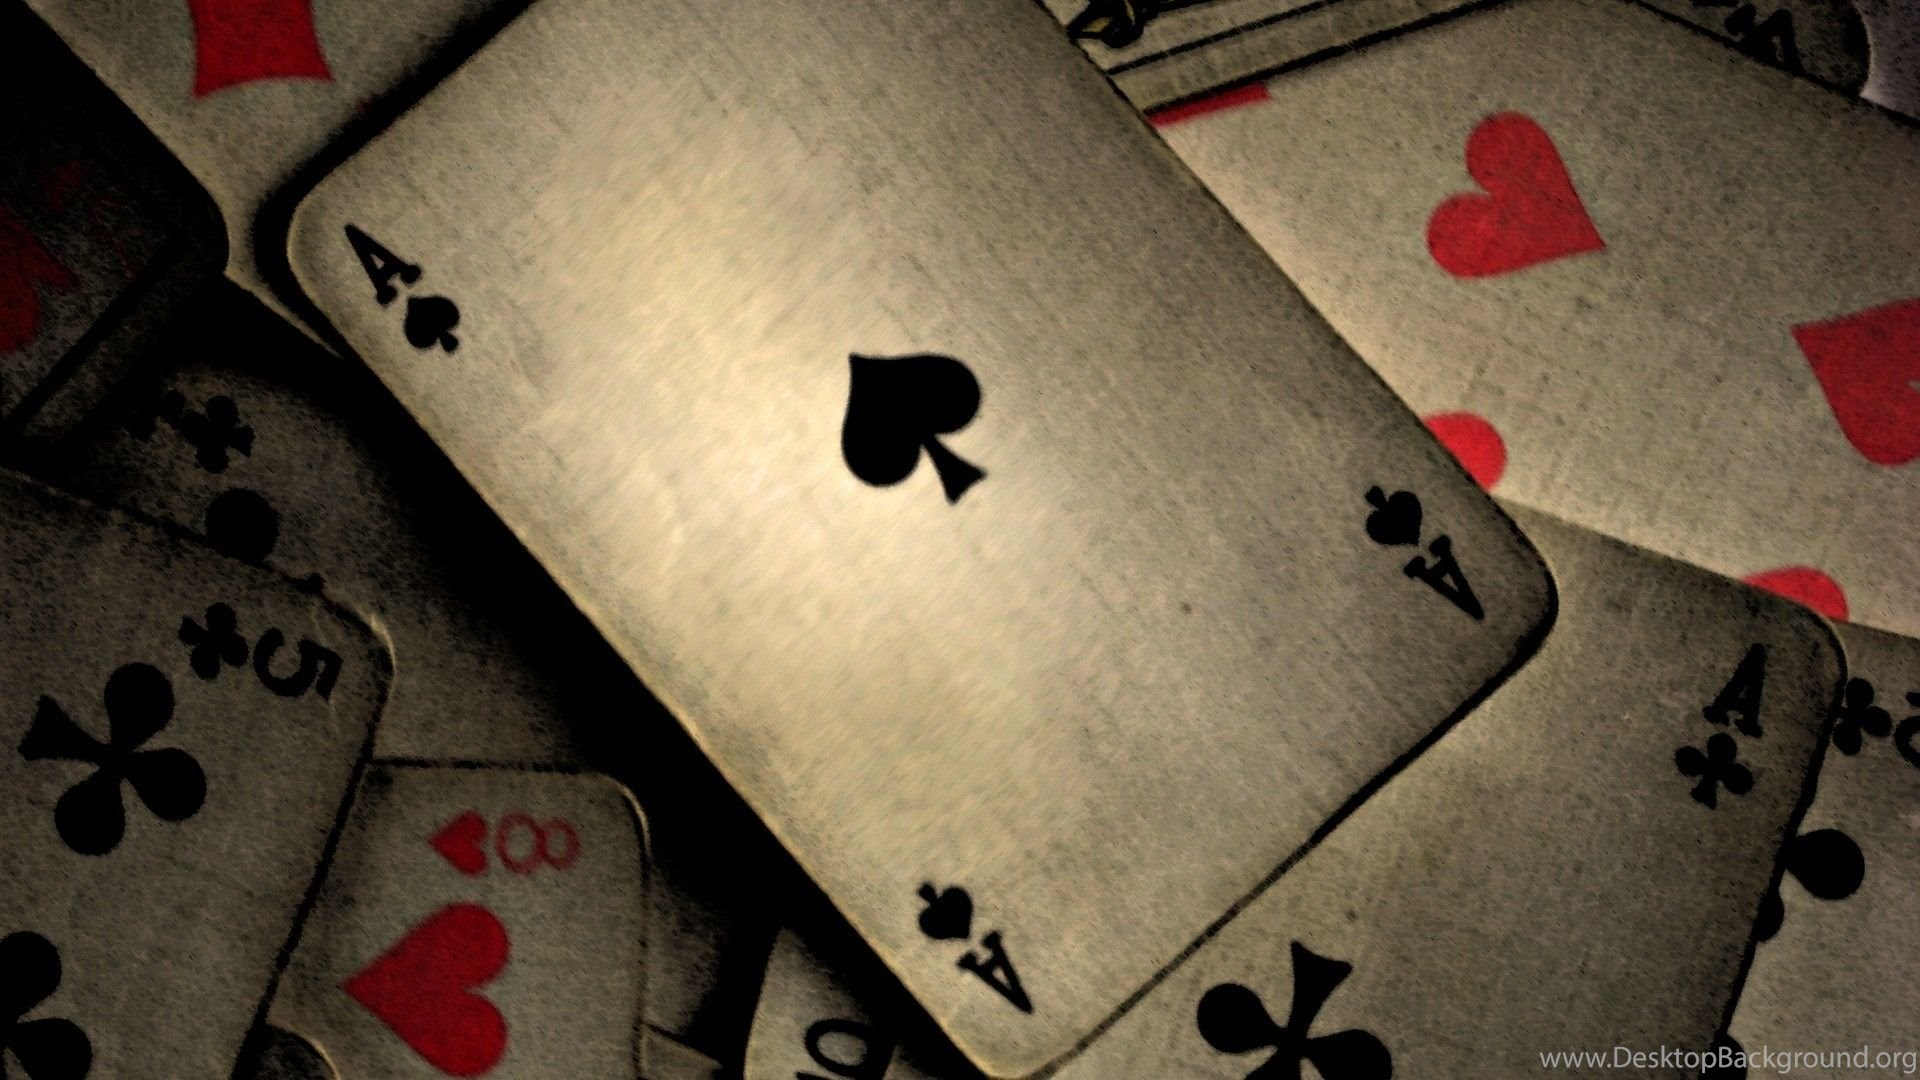 Seven Very Simple Things You Can Do To Save Gambling